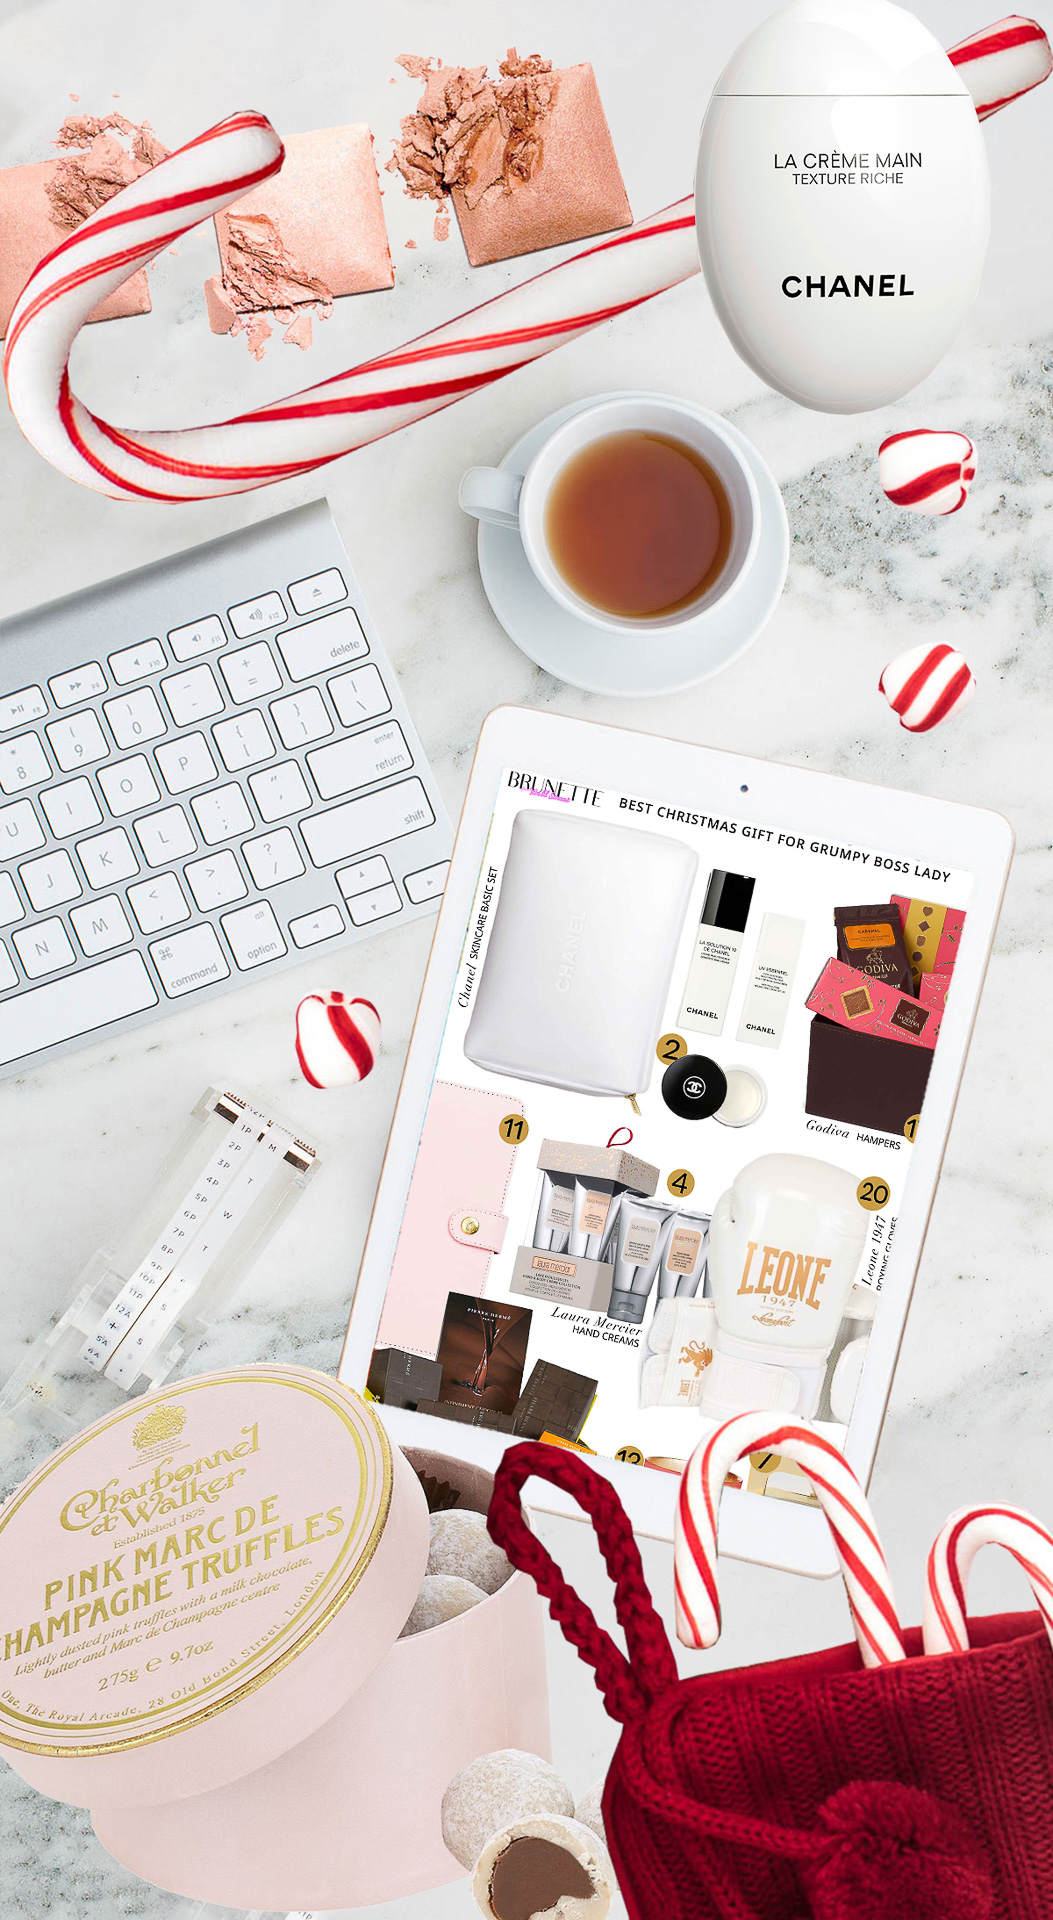 Brunette from Wall Street the best 2019 Christmas gifts for grumpy boss lady